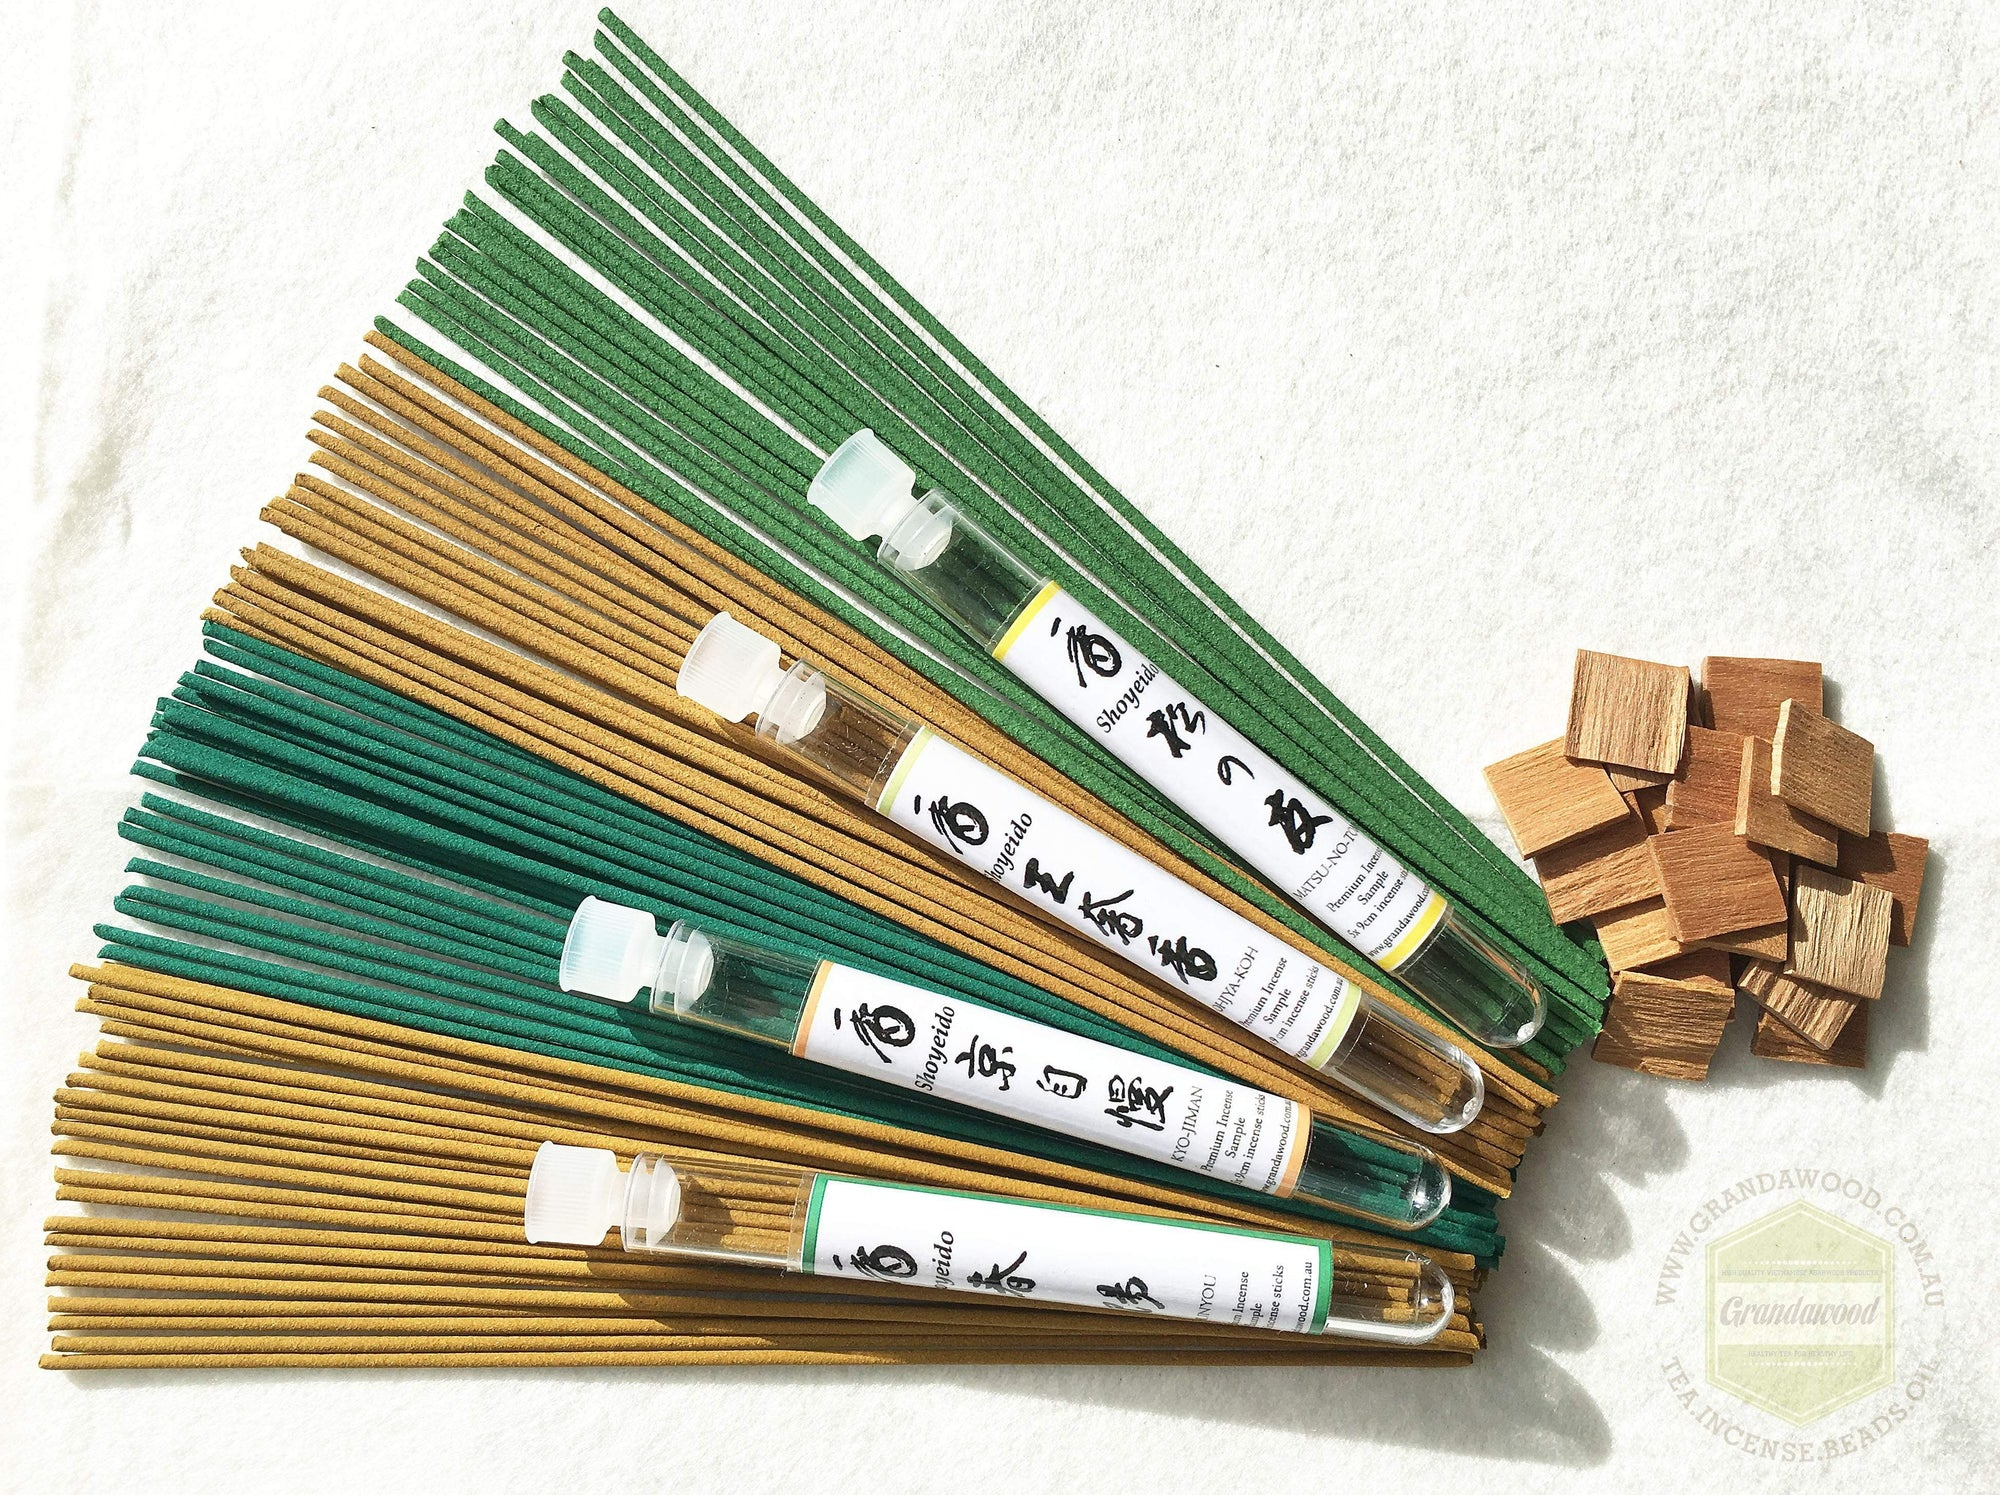 Incense Shoyeido Premium Sandalwood Incenses sample set